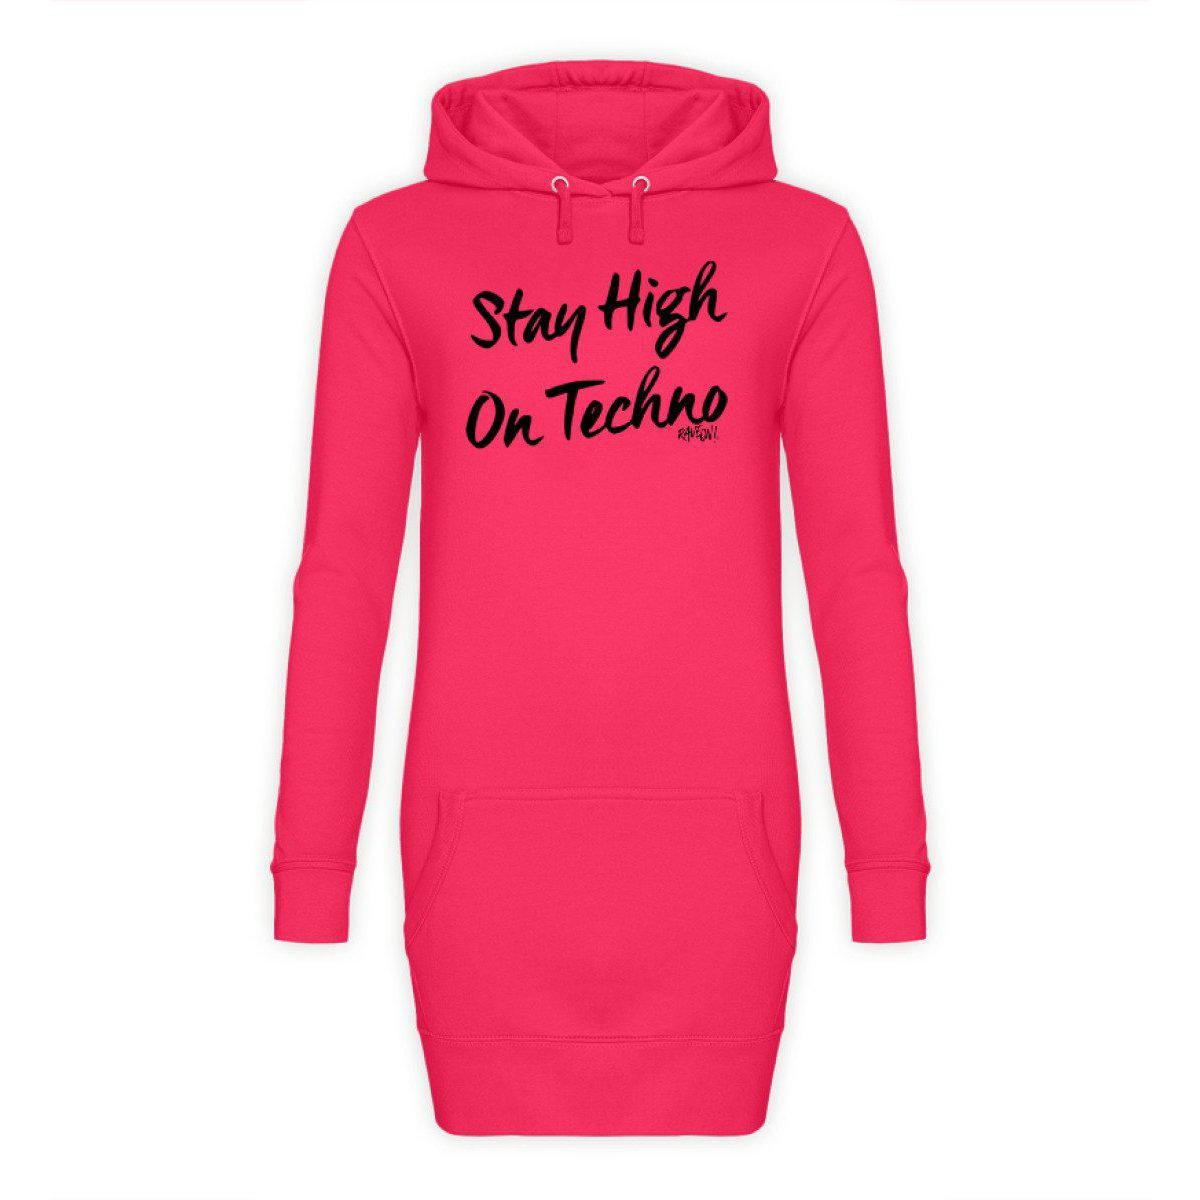 Stay High on Techno - Rave On!® - Damen Hoodie-Kleid Hoodie-Kleid Hot Pink / S - Rave On!® der Club & Techno Szene Shop für Coole Junge Mode Streetwear Style & Fashion Outfits + Sexy Festival 420 Stuff